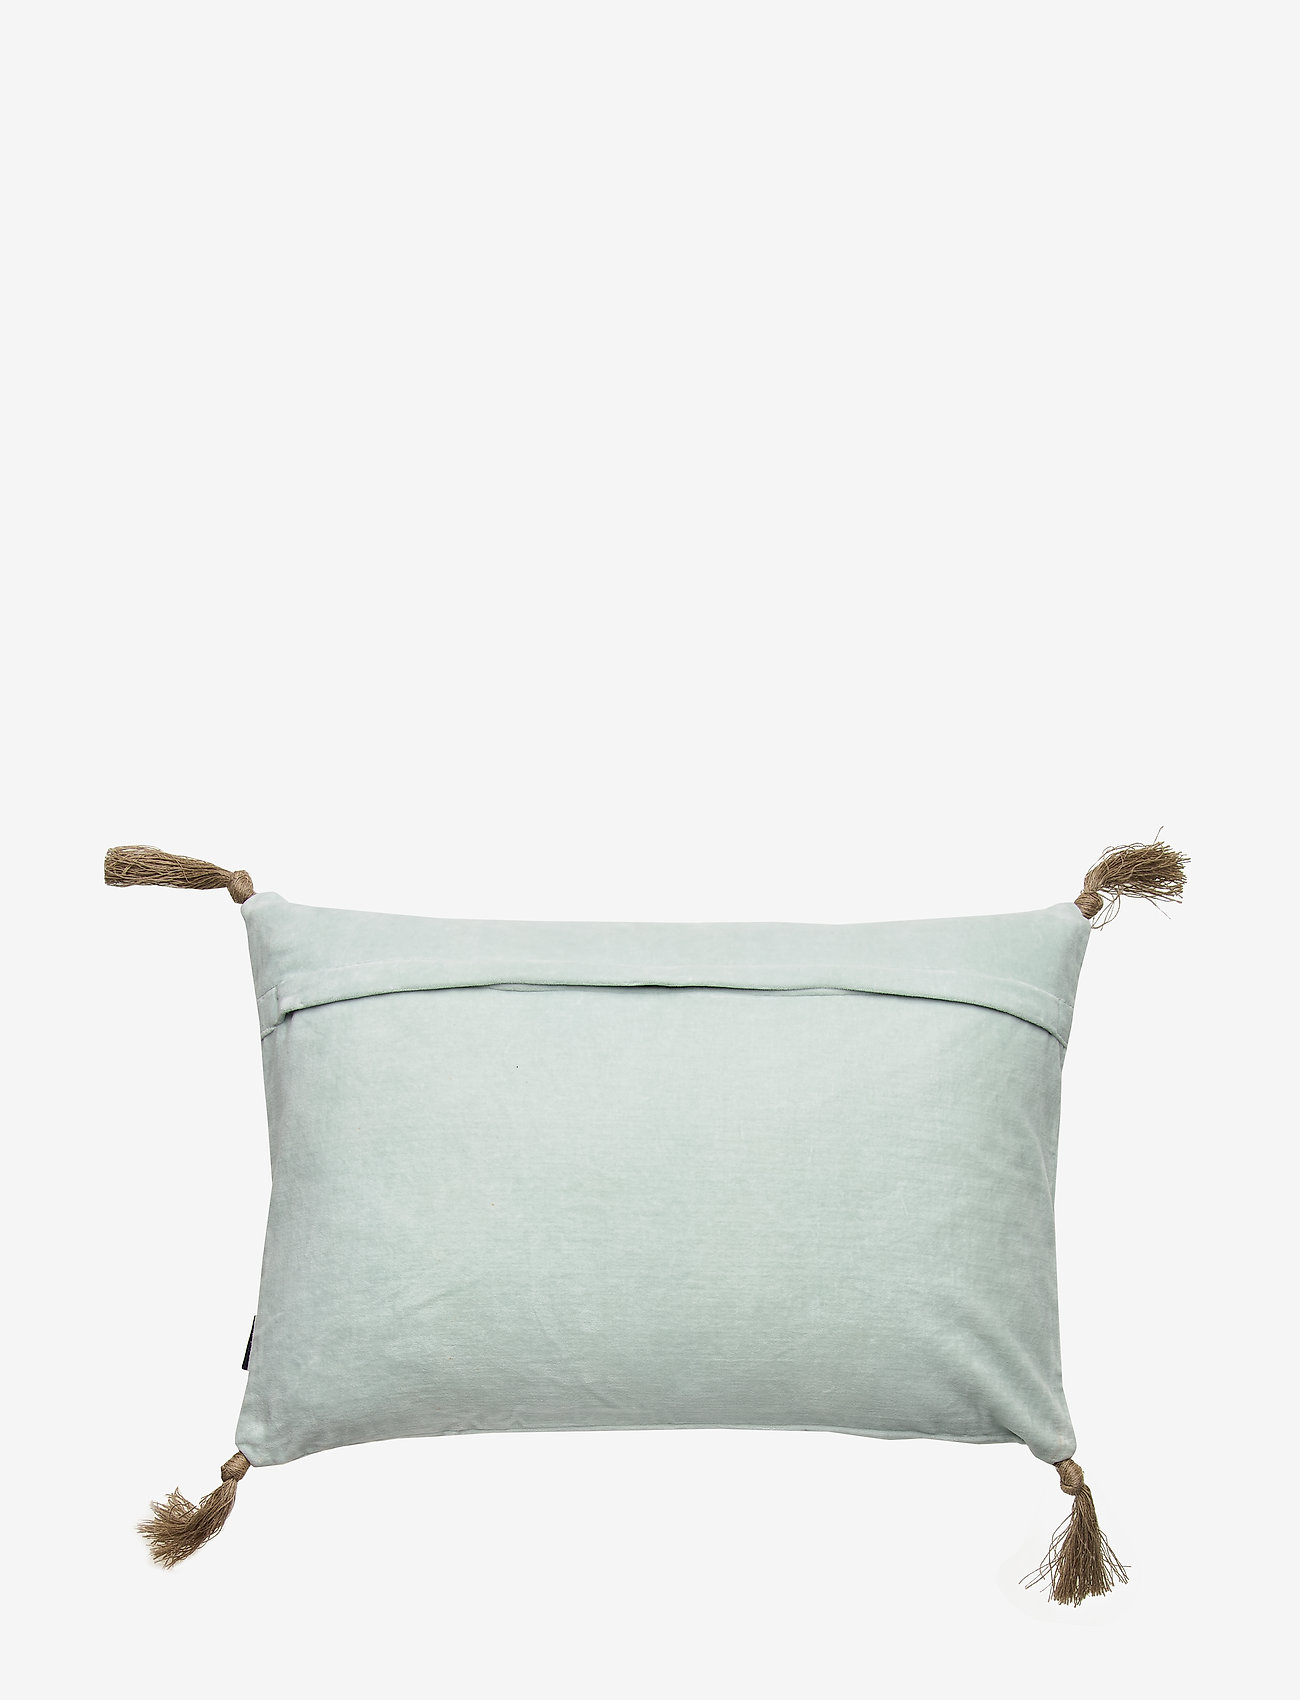 Gripsholm CUSHION COVER AUGUST GOTS - Salon SKYLIGHT - Akcesoria